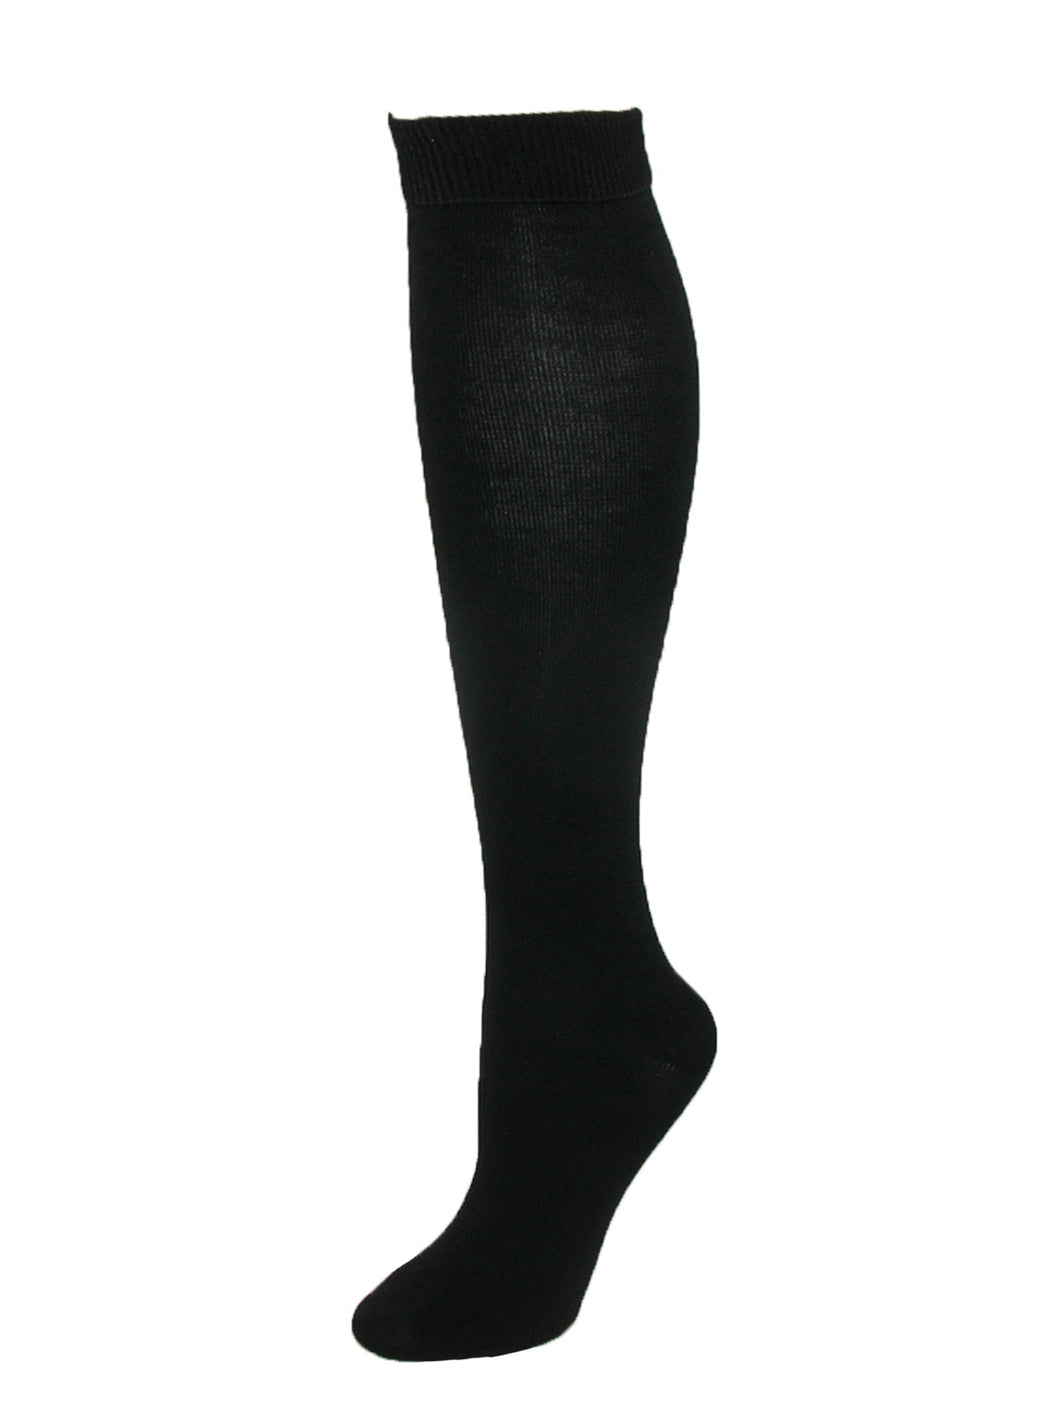 Me Moi Bamboo blend Solid Knee High